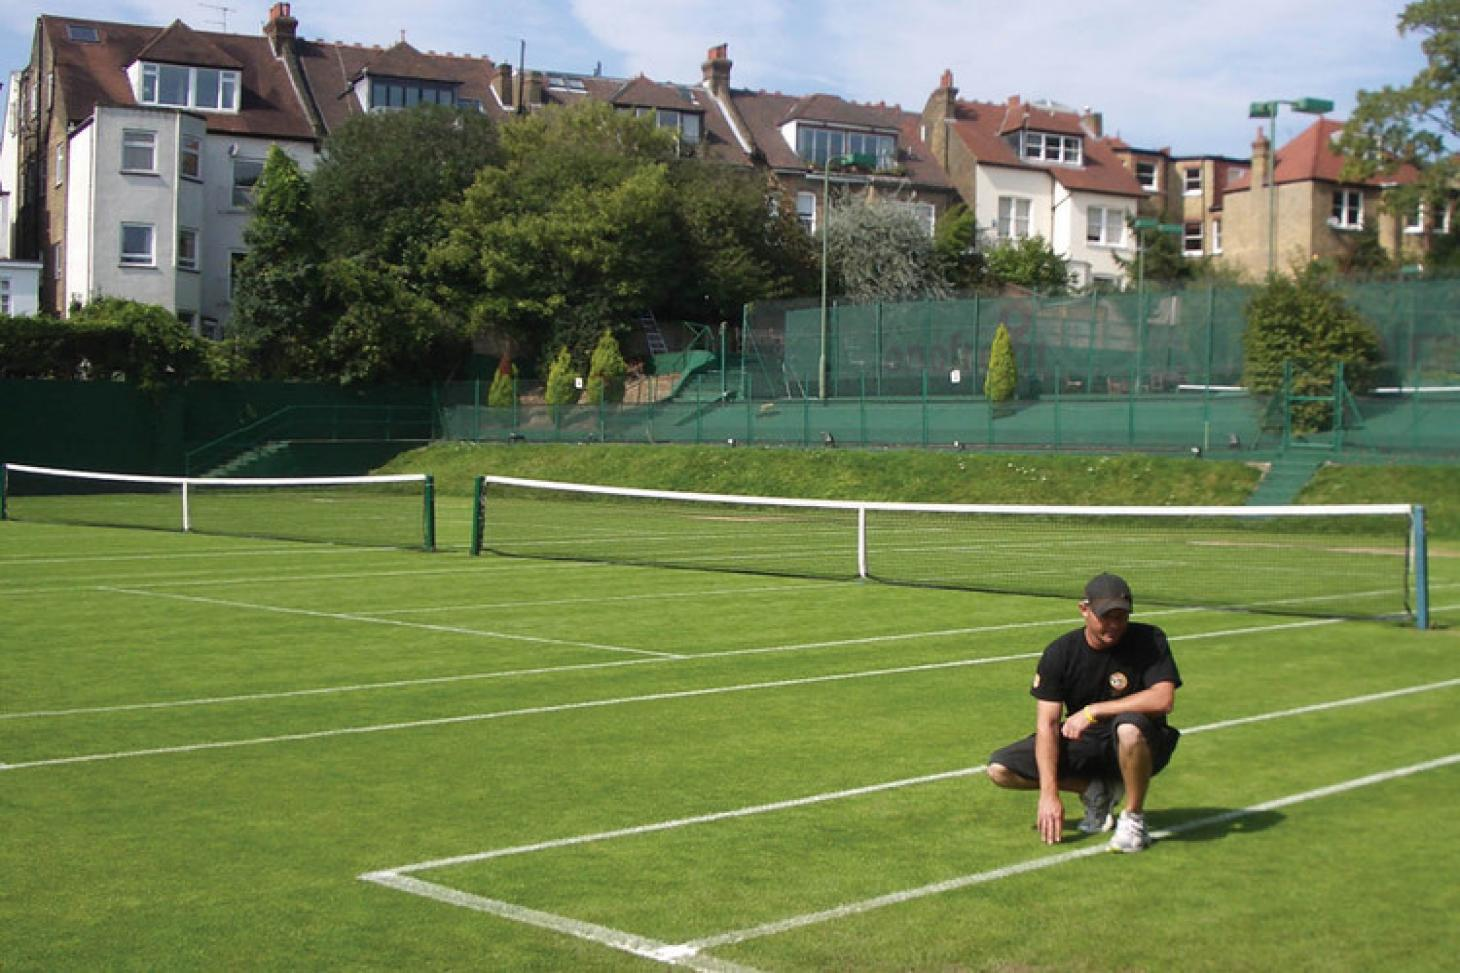 Southfields Lawn Tennis Club Outdoor | Grass tennis court